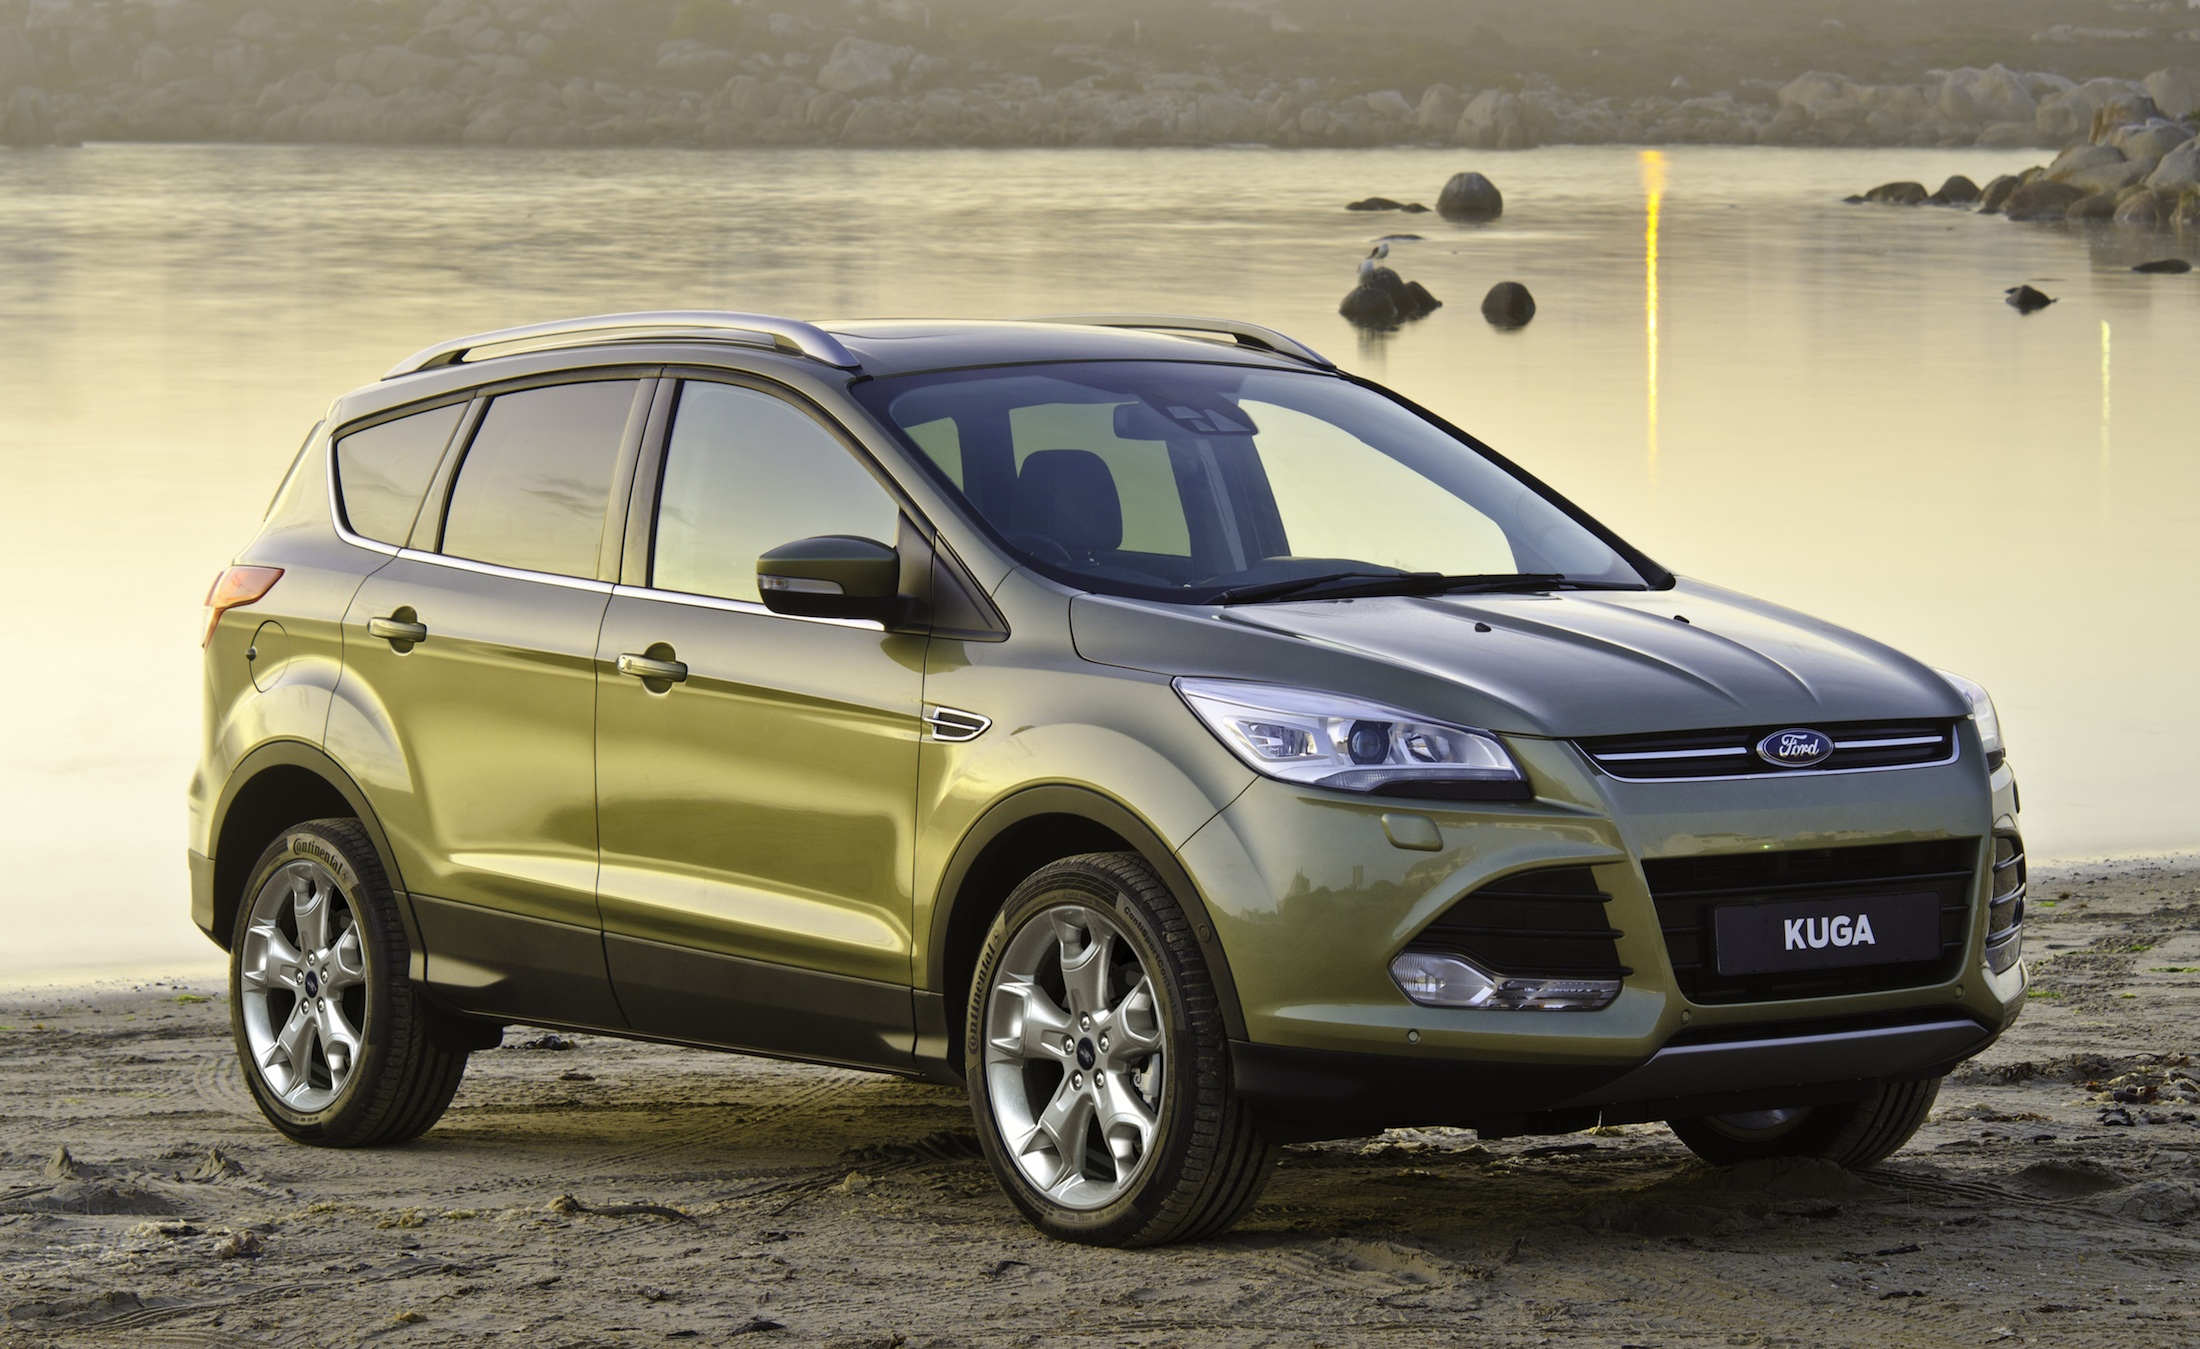 2013 ford kuga review and price the news articles reviews comments prices of cars and. Black Bedroom Furniture Sets. Home Design Ideas